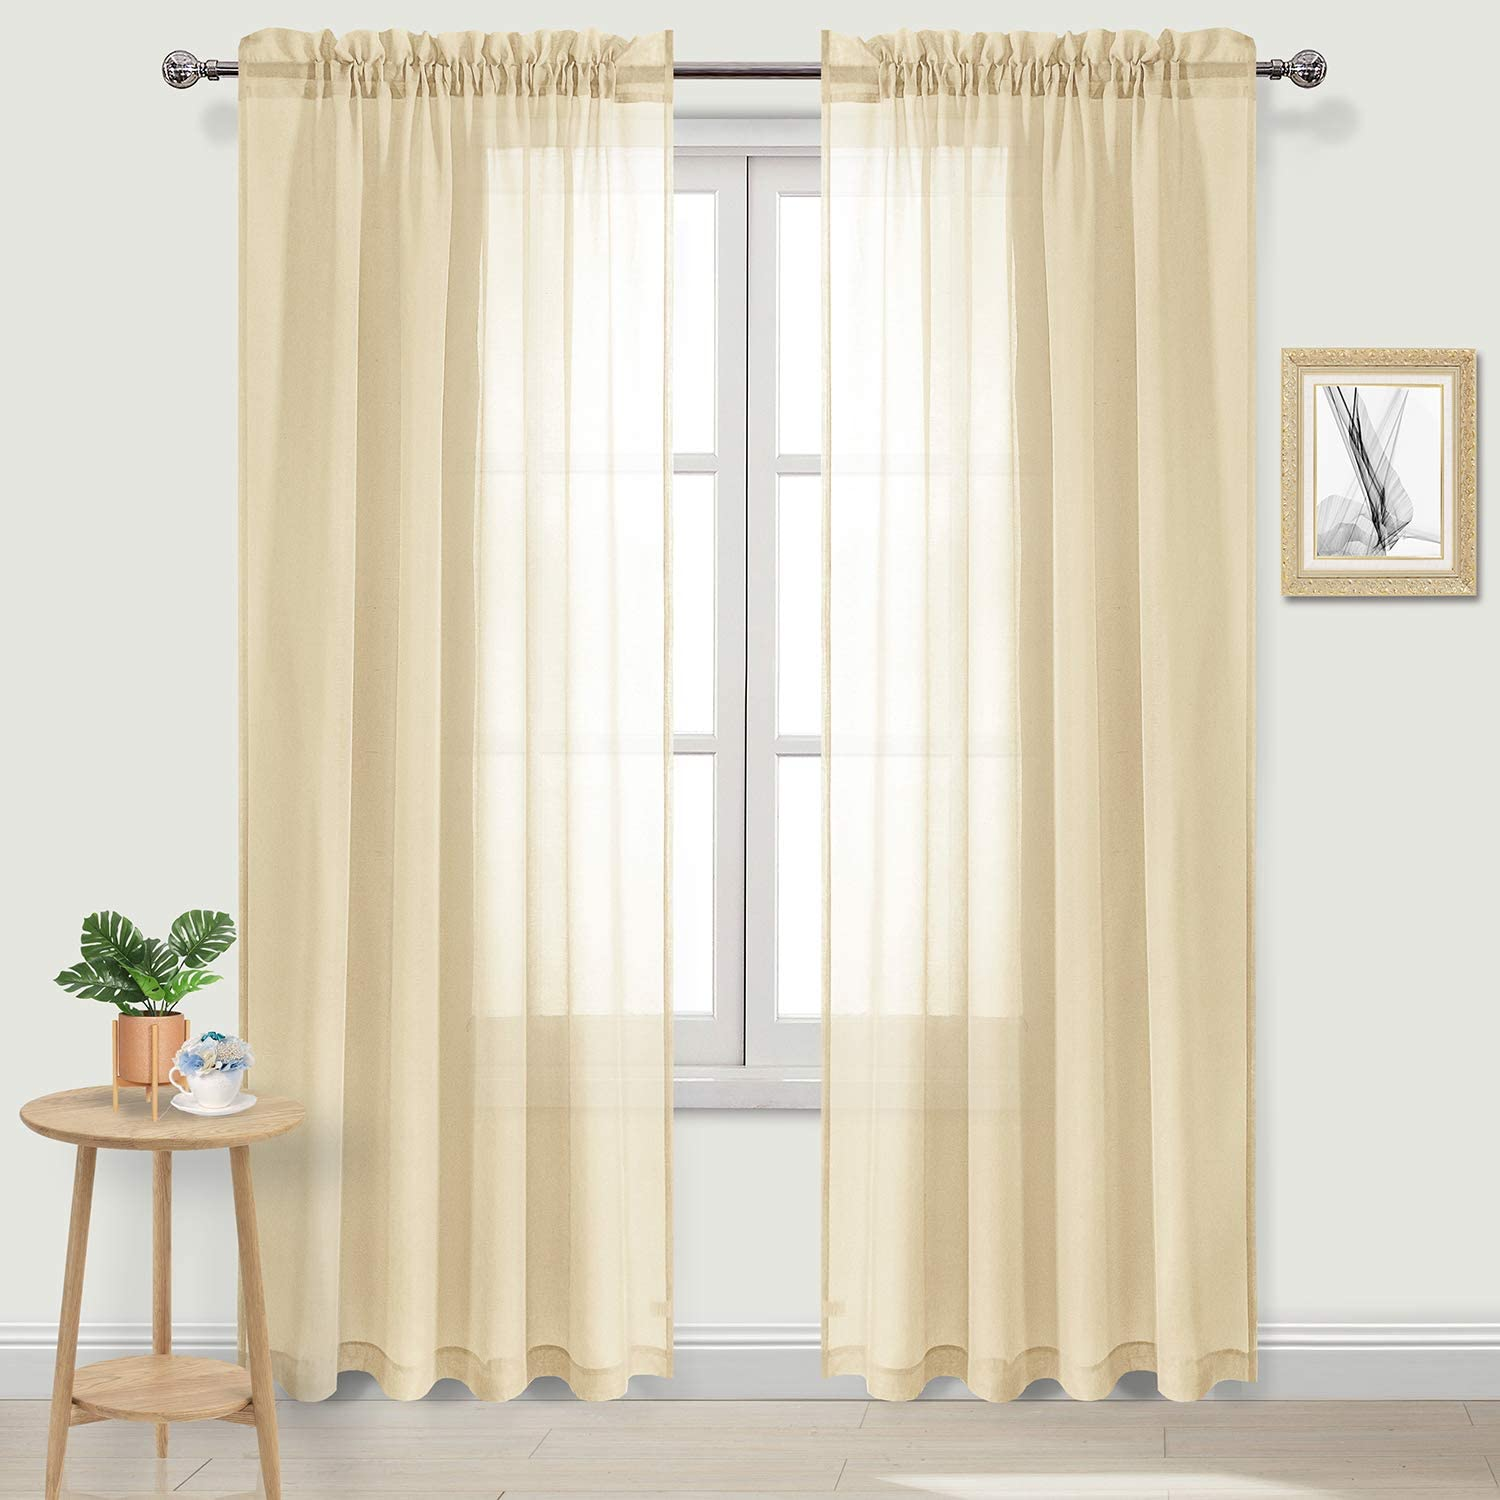 Amazon Com Dwcn Beige Sheer Curtains Semi Transparent Voile Rod Pocket Curtains For Bedroom And Living Room 52 X 90 Inches Long Set Of 2 Panels Home Kitchen